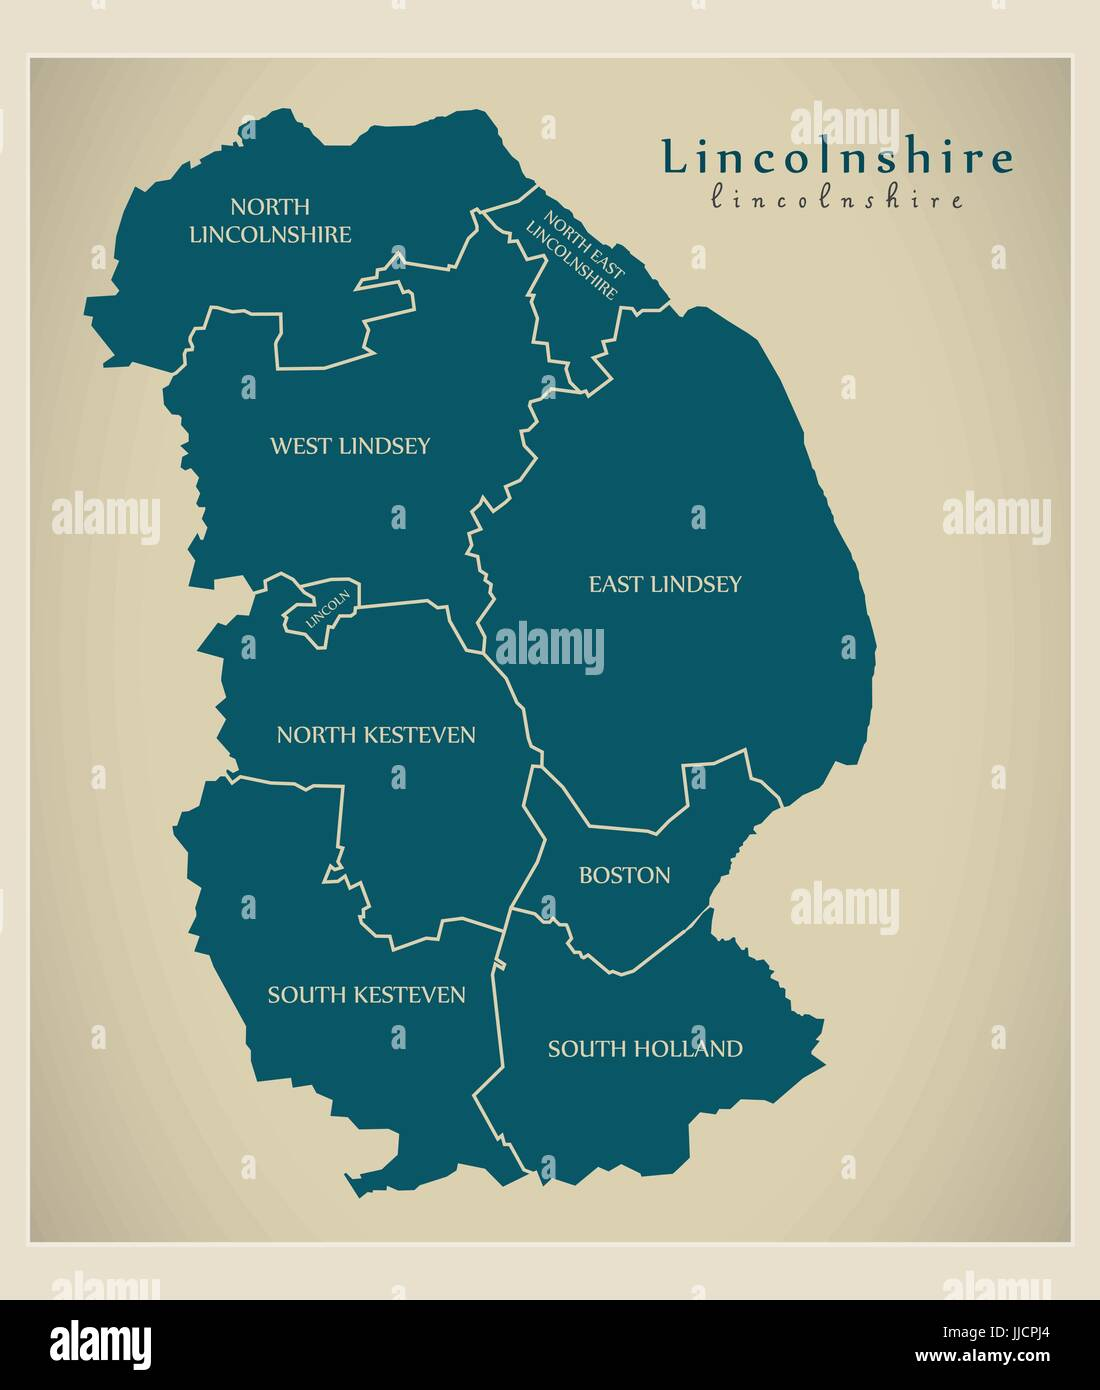 Modern Map - Lincolnshire county with detailed captions UK illustration - Stock Vector